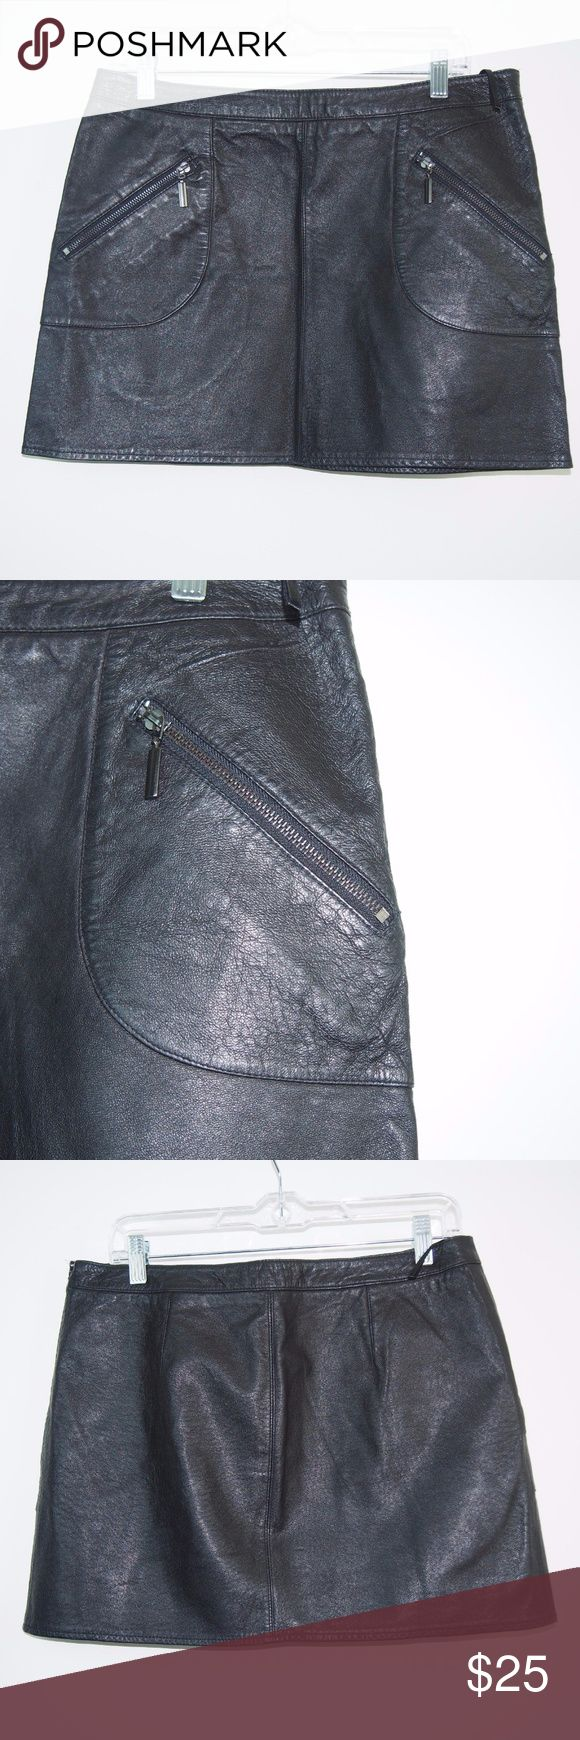 """Zara Basic Leather Mini Skirt Zara Basic Zip Pocket Mini Short Skirt Womens Black 100% Leather Medium  Gently Worn, Excellent Condition!  Please refer to pictures for additional condition information and if you have any other questions about this item please feel free to ask!  Measurements Laying Flat: Length: 14"""" Waist: 16.25"""" Zara Skirts Mini"""